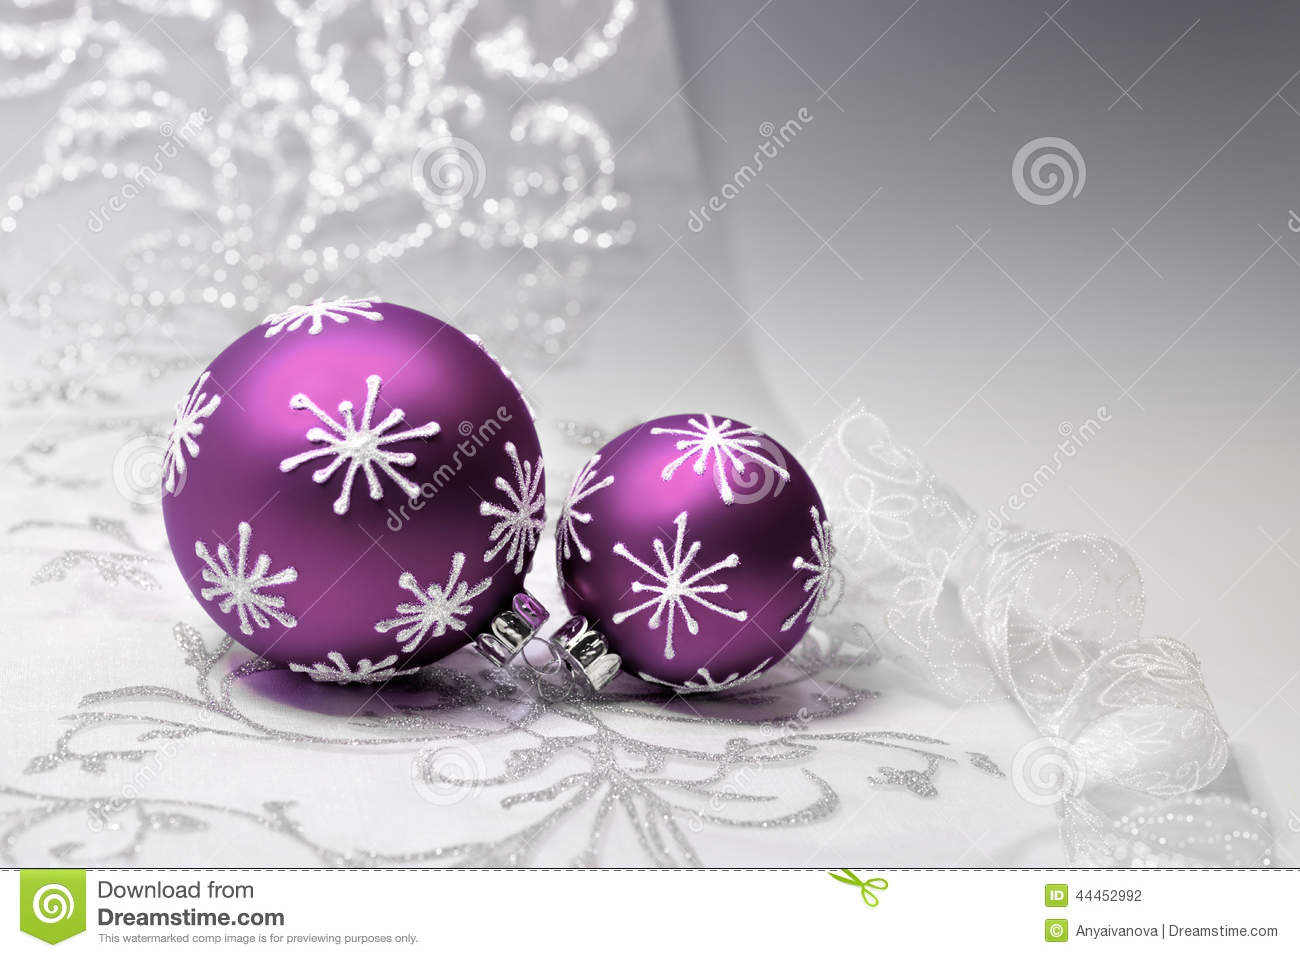 Weihnachtskugeln In Lila Purple Christmas Decorations With Silver Ornament Stock